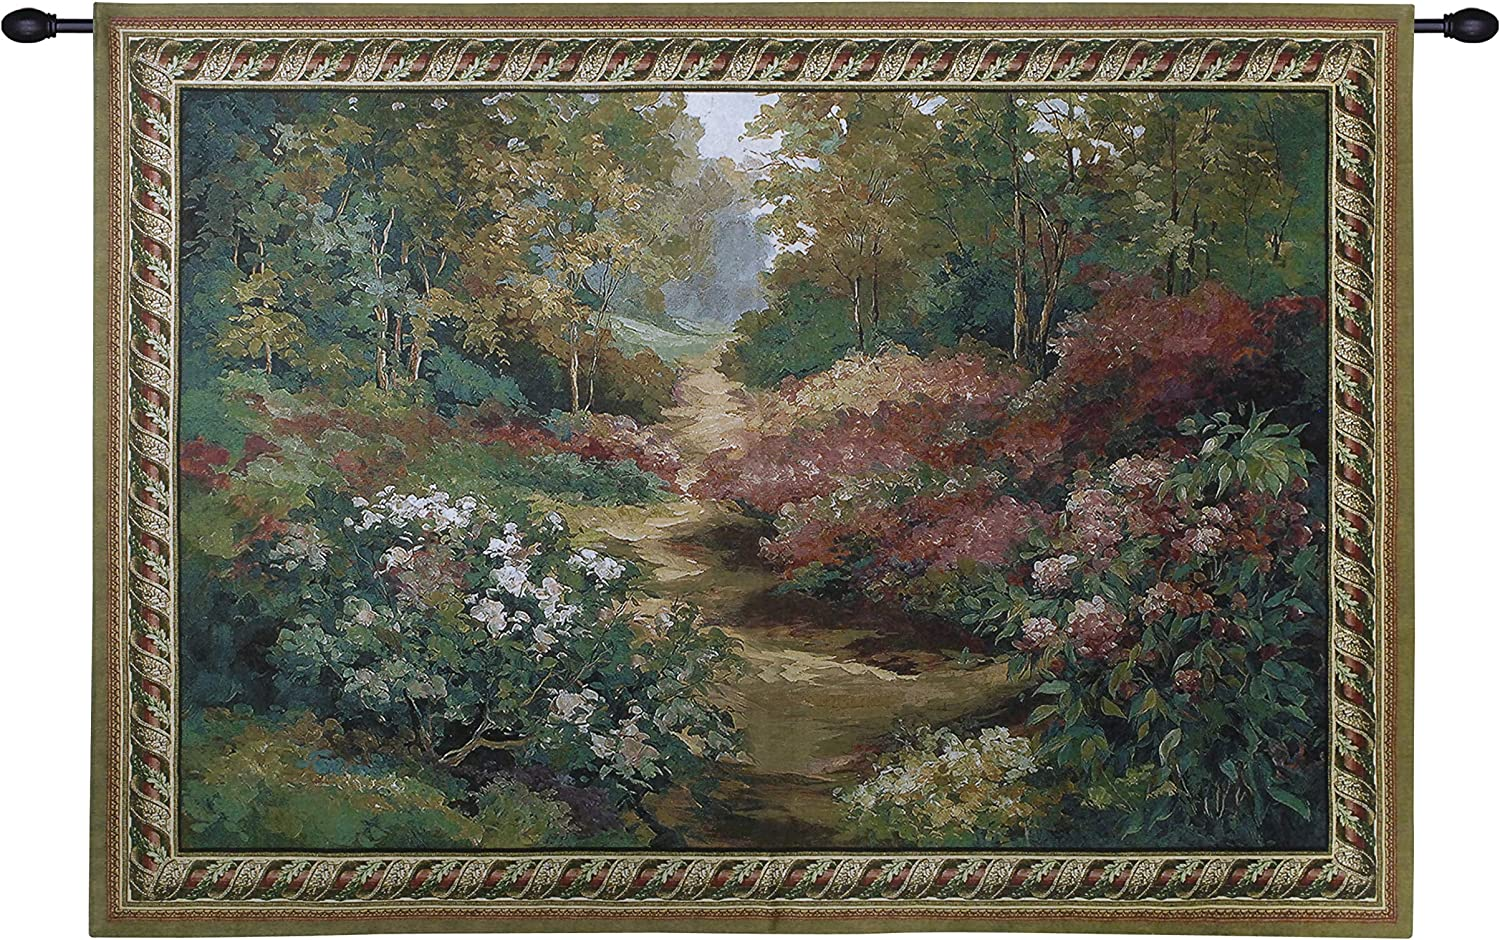 Along the Garden Path by Alix Stefan   Woven Tapestry Wall Art Hanging   Blooming Flowers Nature Trail Artwork   100% Cotton USA Size 68x53